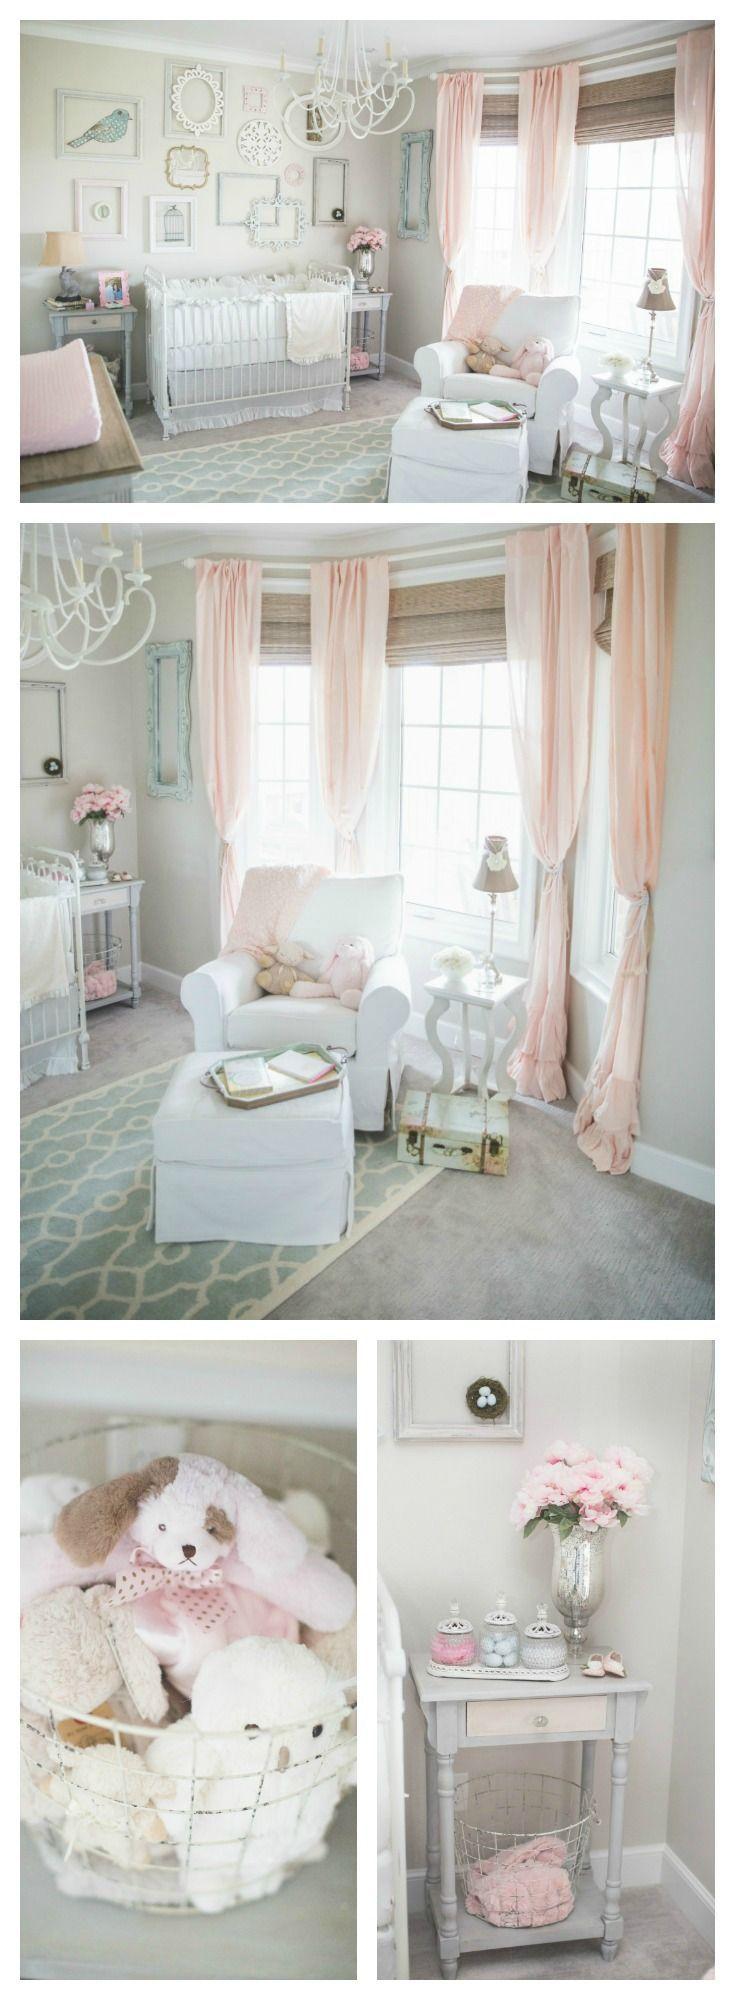 Pink and gray shabby chic nursery - love the soft and sweet details of this baby room! www.homeology.co.za